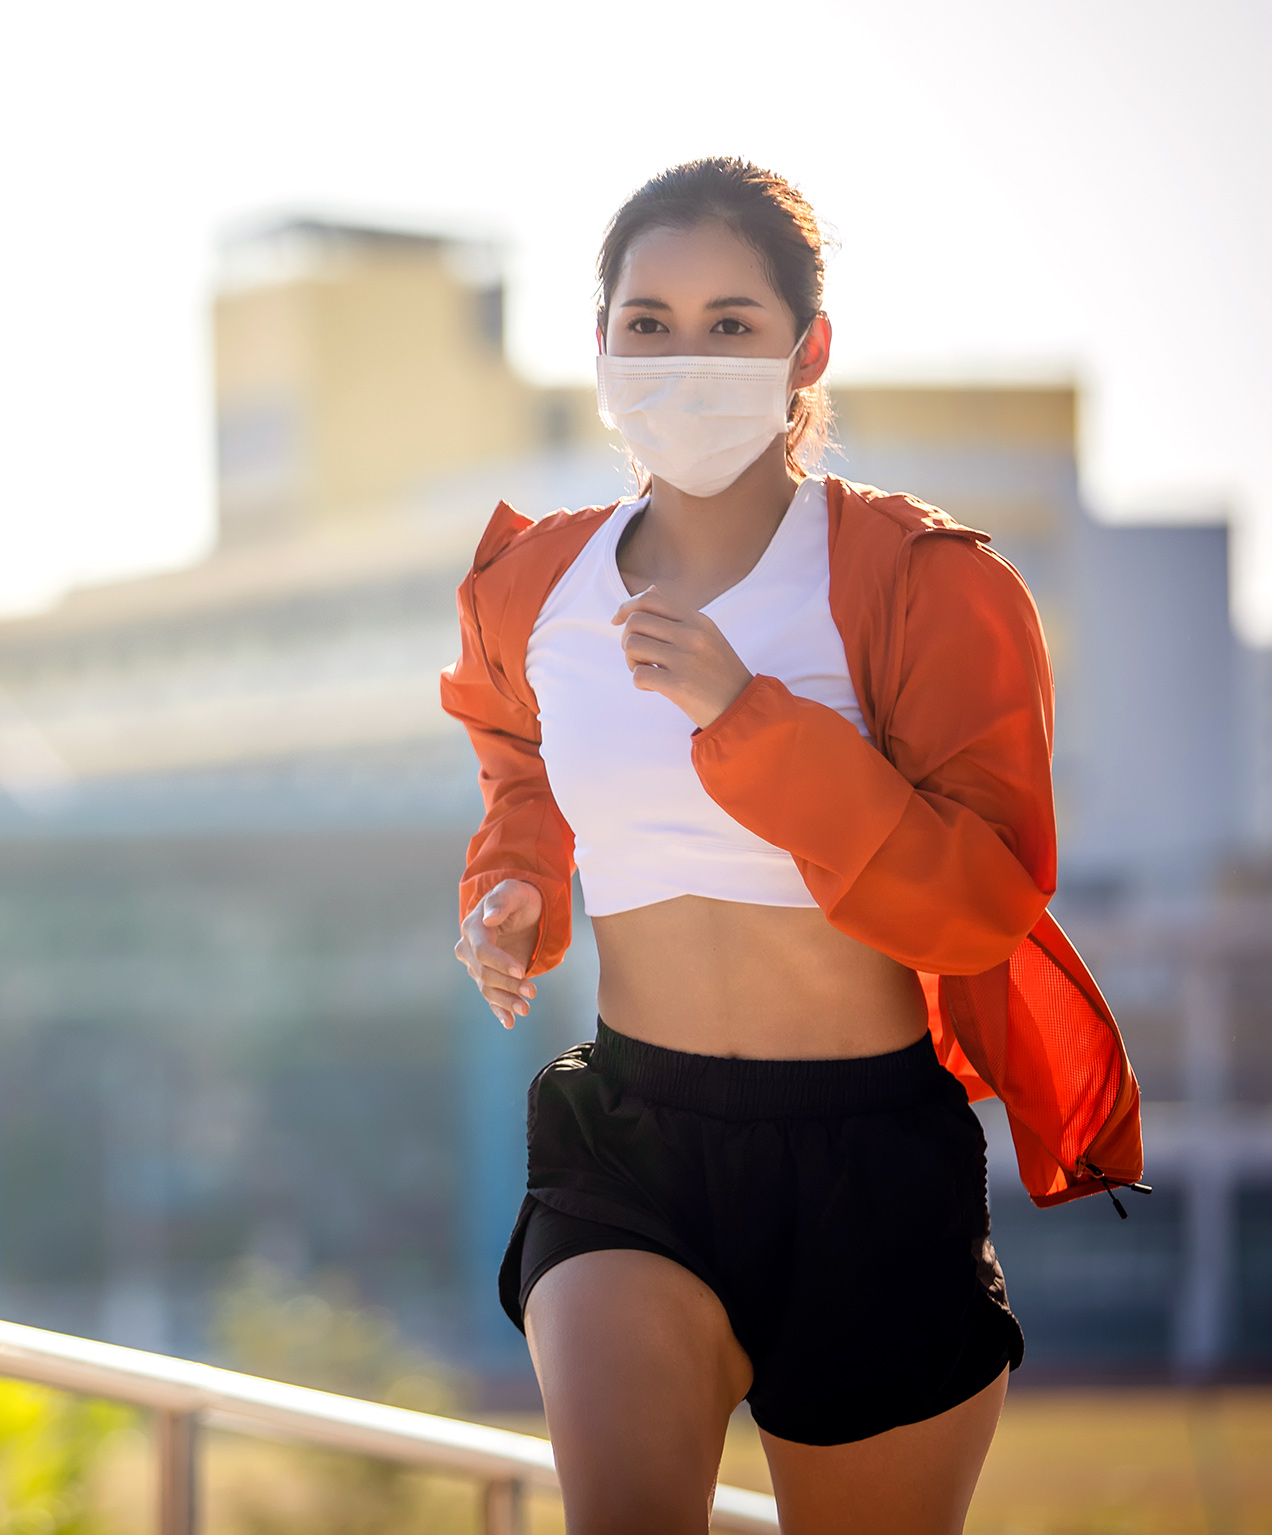 healthcare organization marketing woman jogging with mask